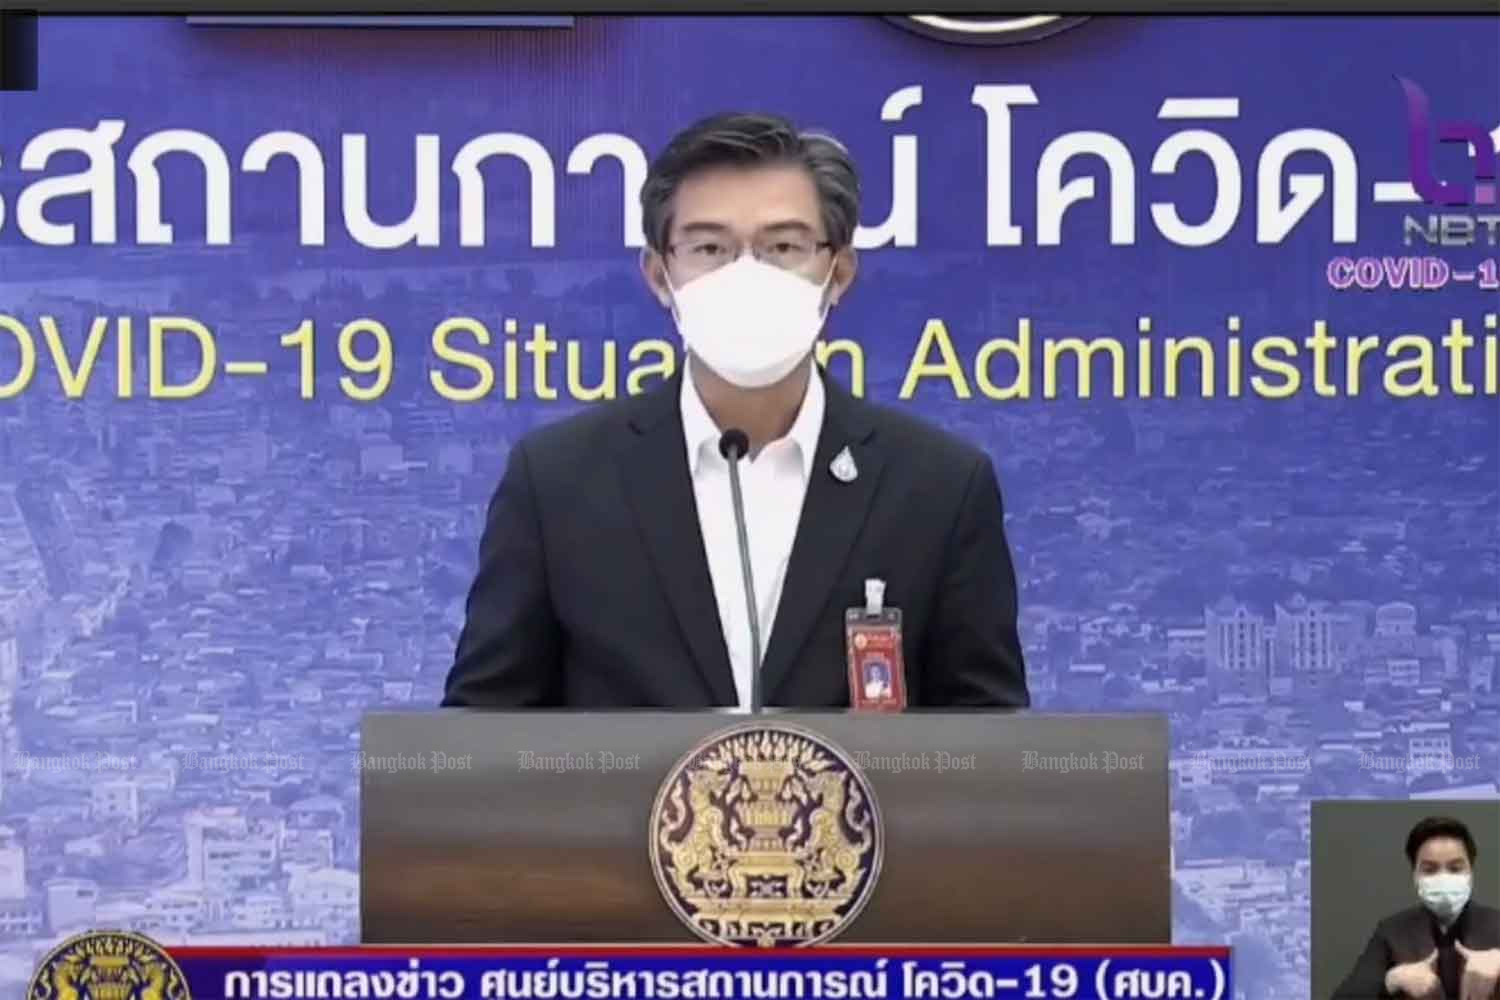 Taweesilp Visanuyothin, spokesman for the Centre for Covid-19 Situation Administration, announces harsher Covid-19 control measures, in a broadcast from Government House in Bangkok on Thursday. (Screenshot)